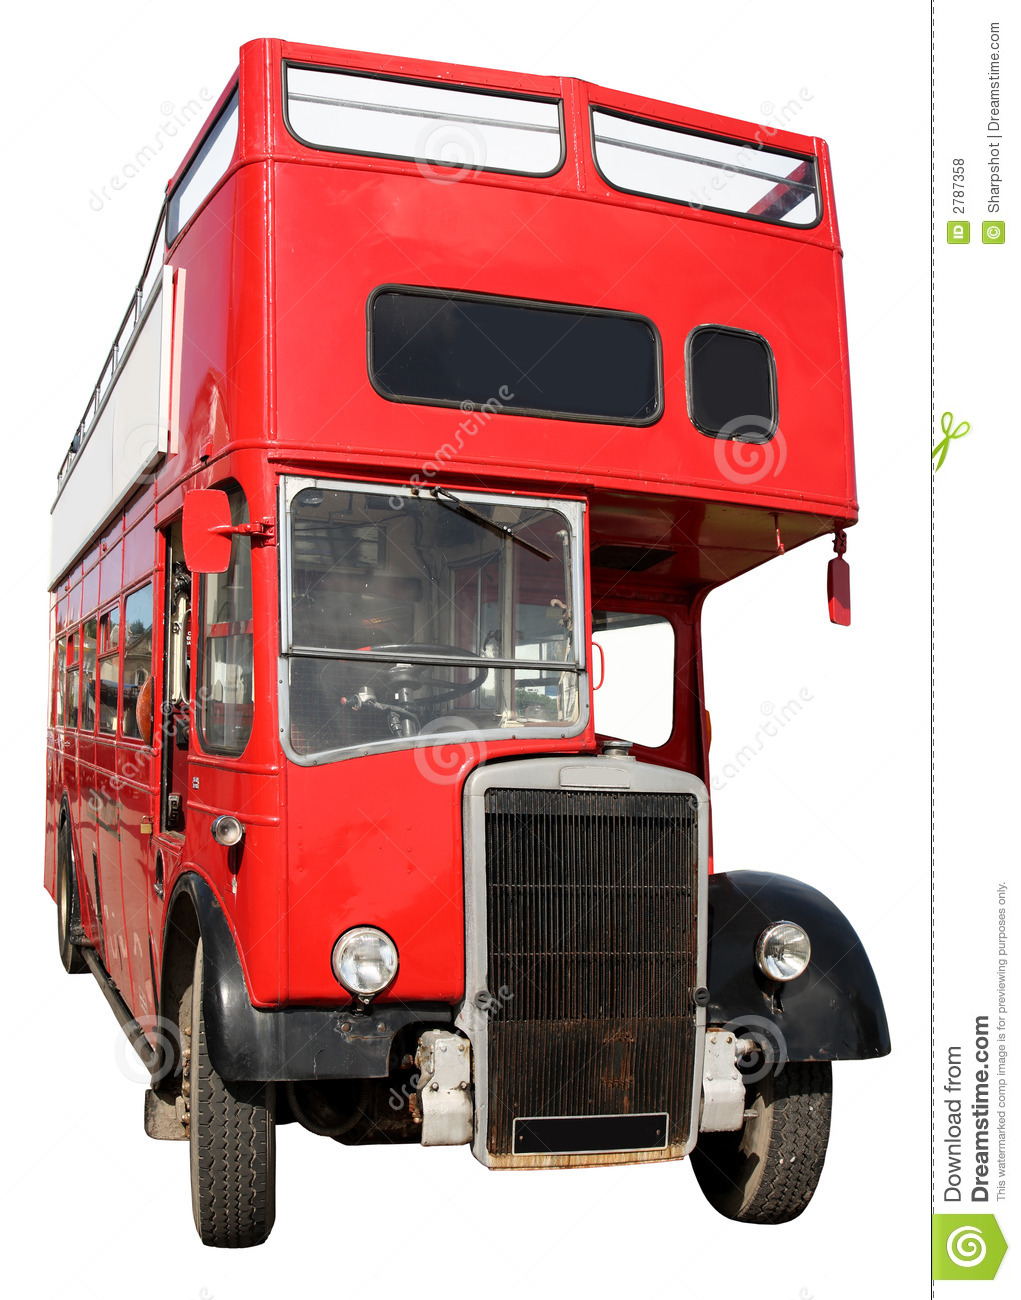 Red london bus Images and Stock Photos. 1,469 Red london bus ...